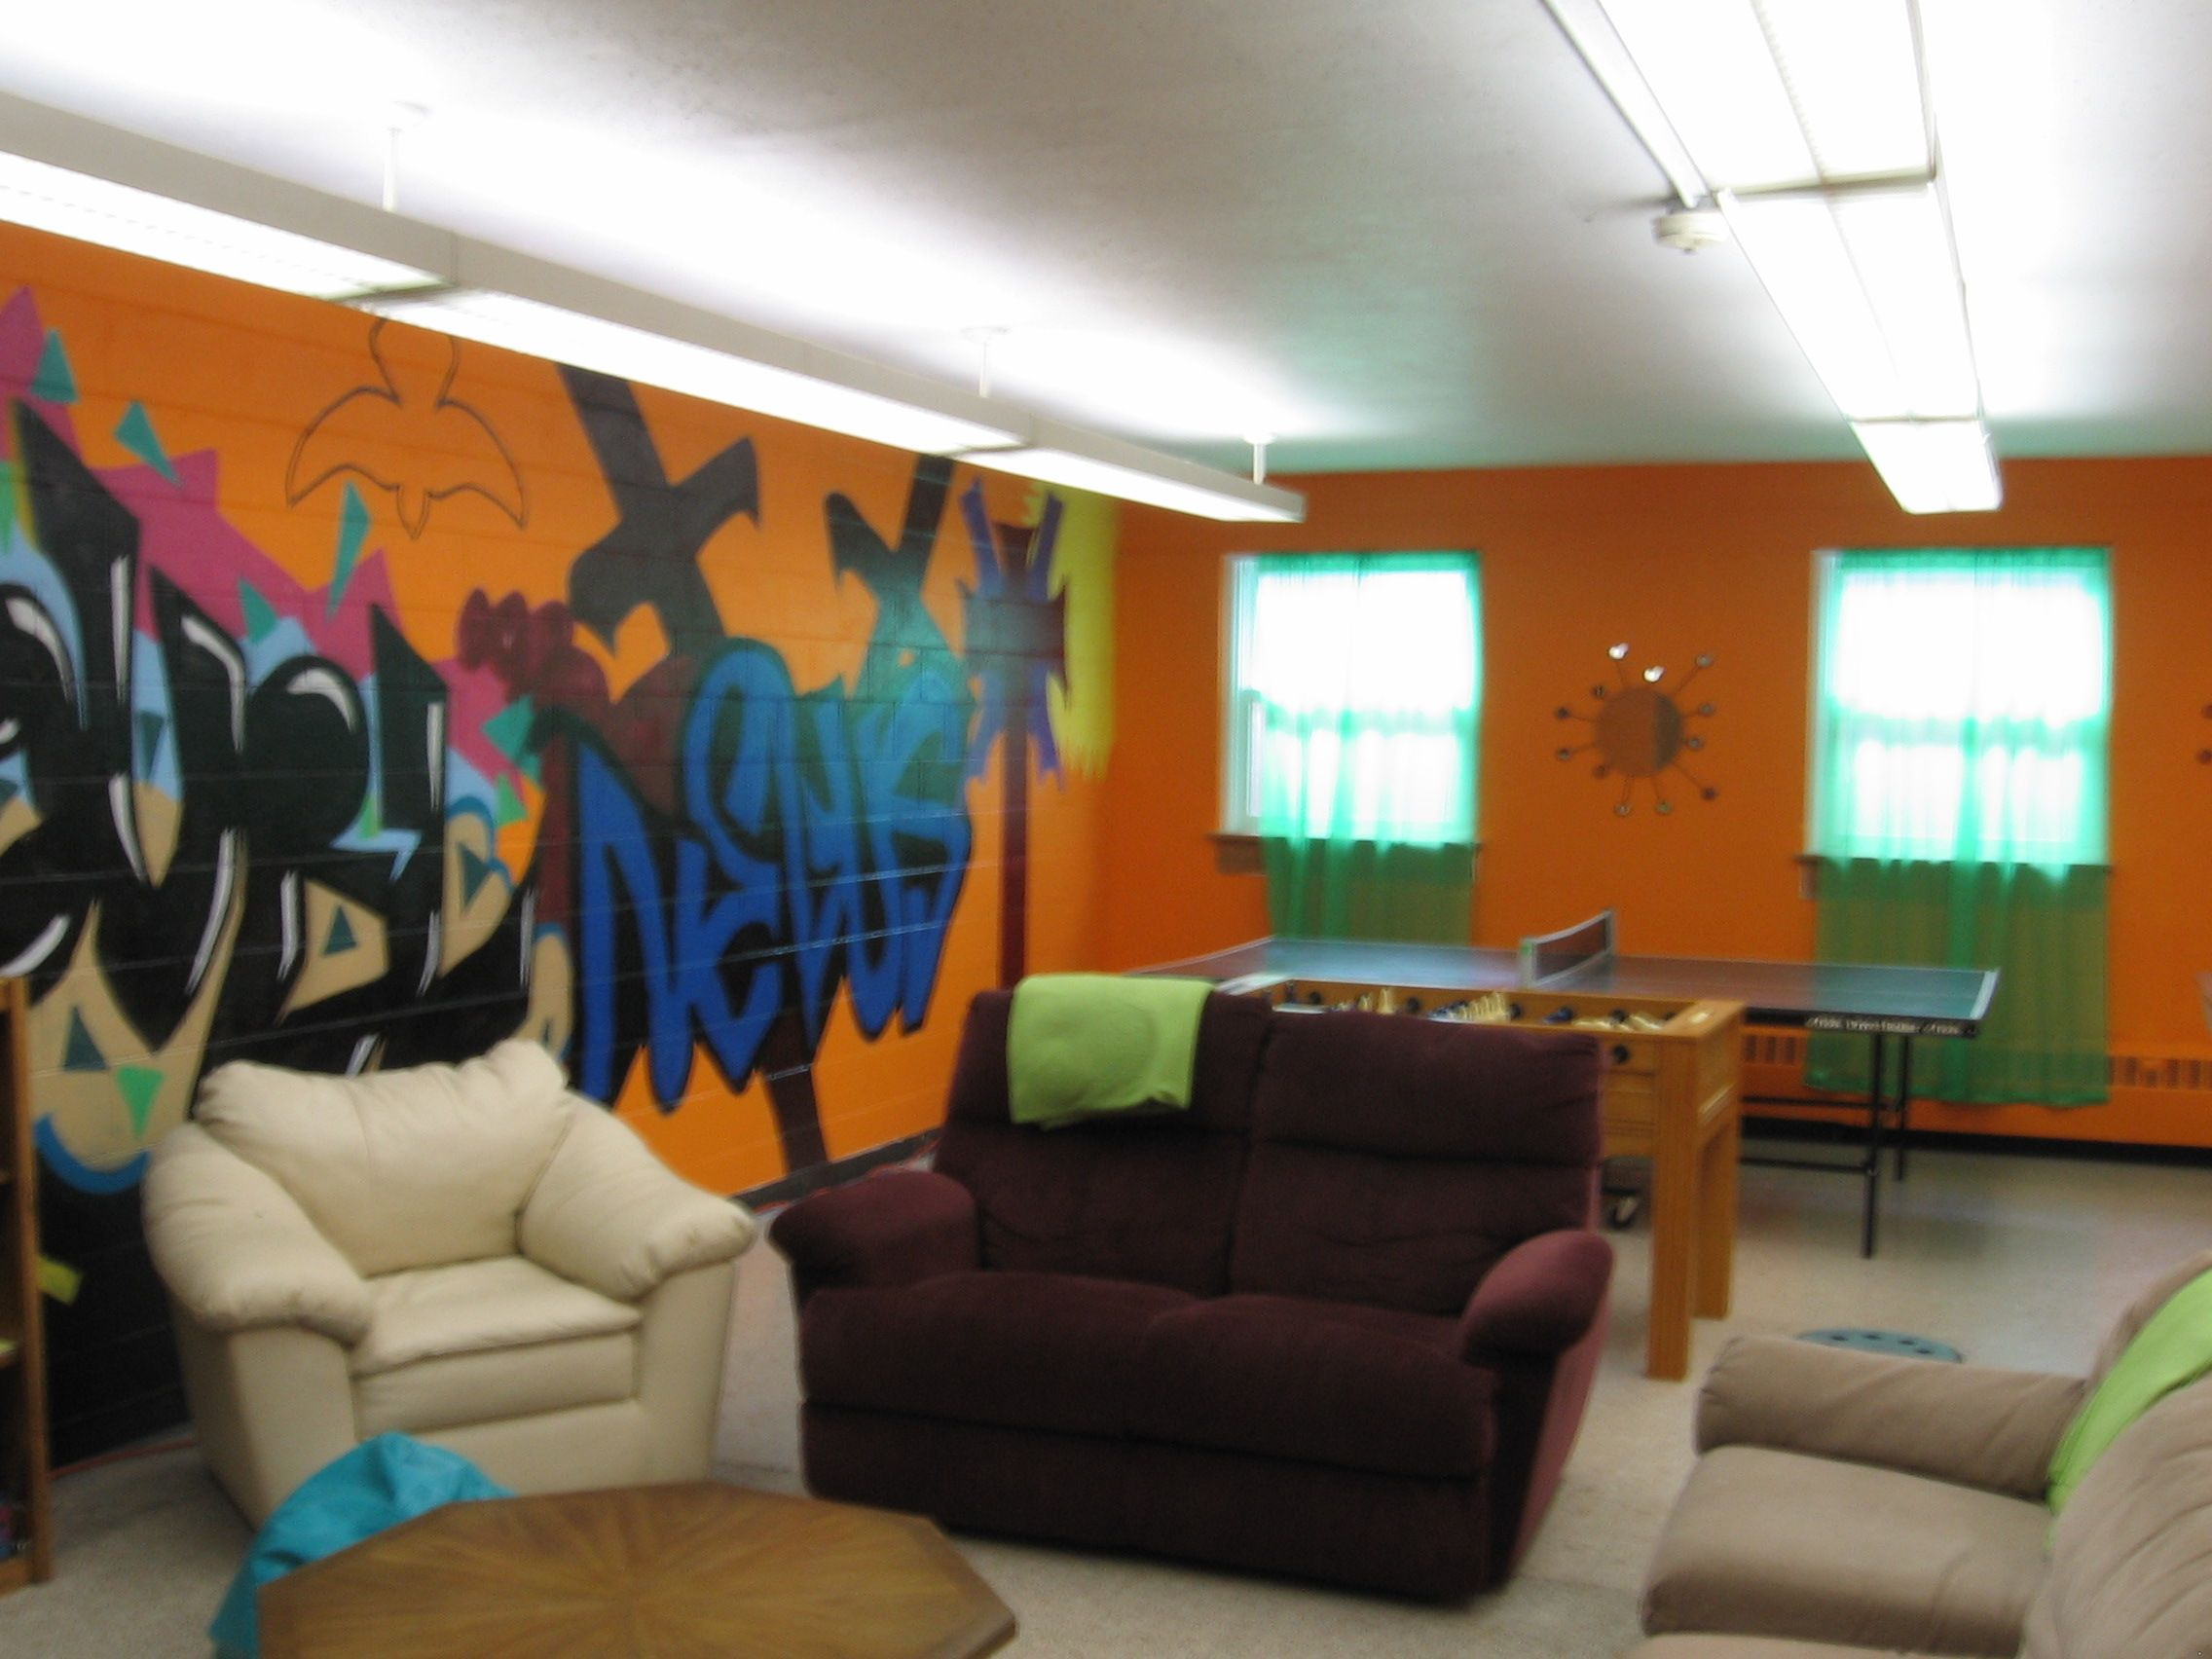 Pin By Interior Designer In A Box On Kids Teenager: MEET OUR NEW SR. HIGH YOUTH ROOM!